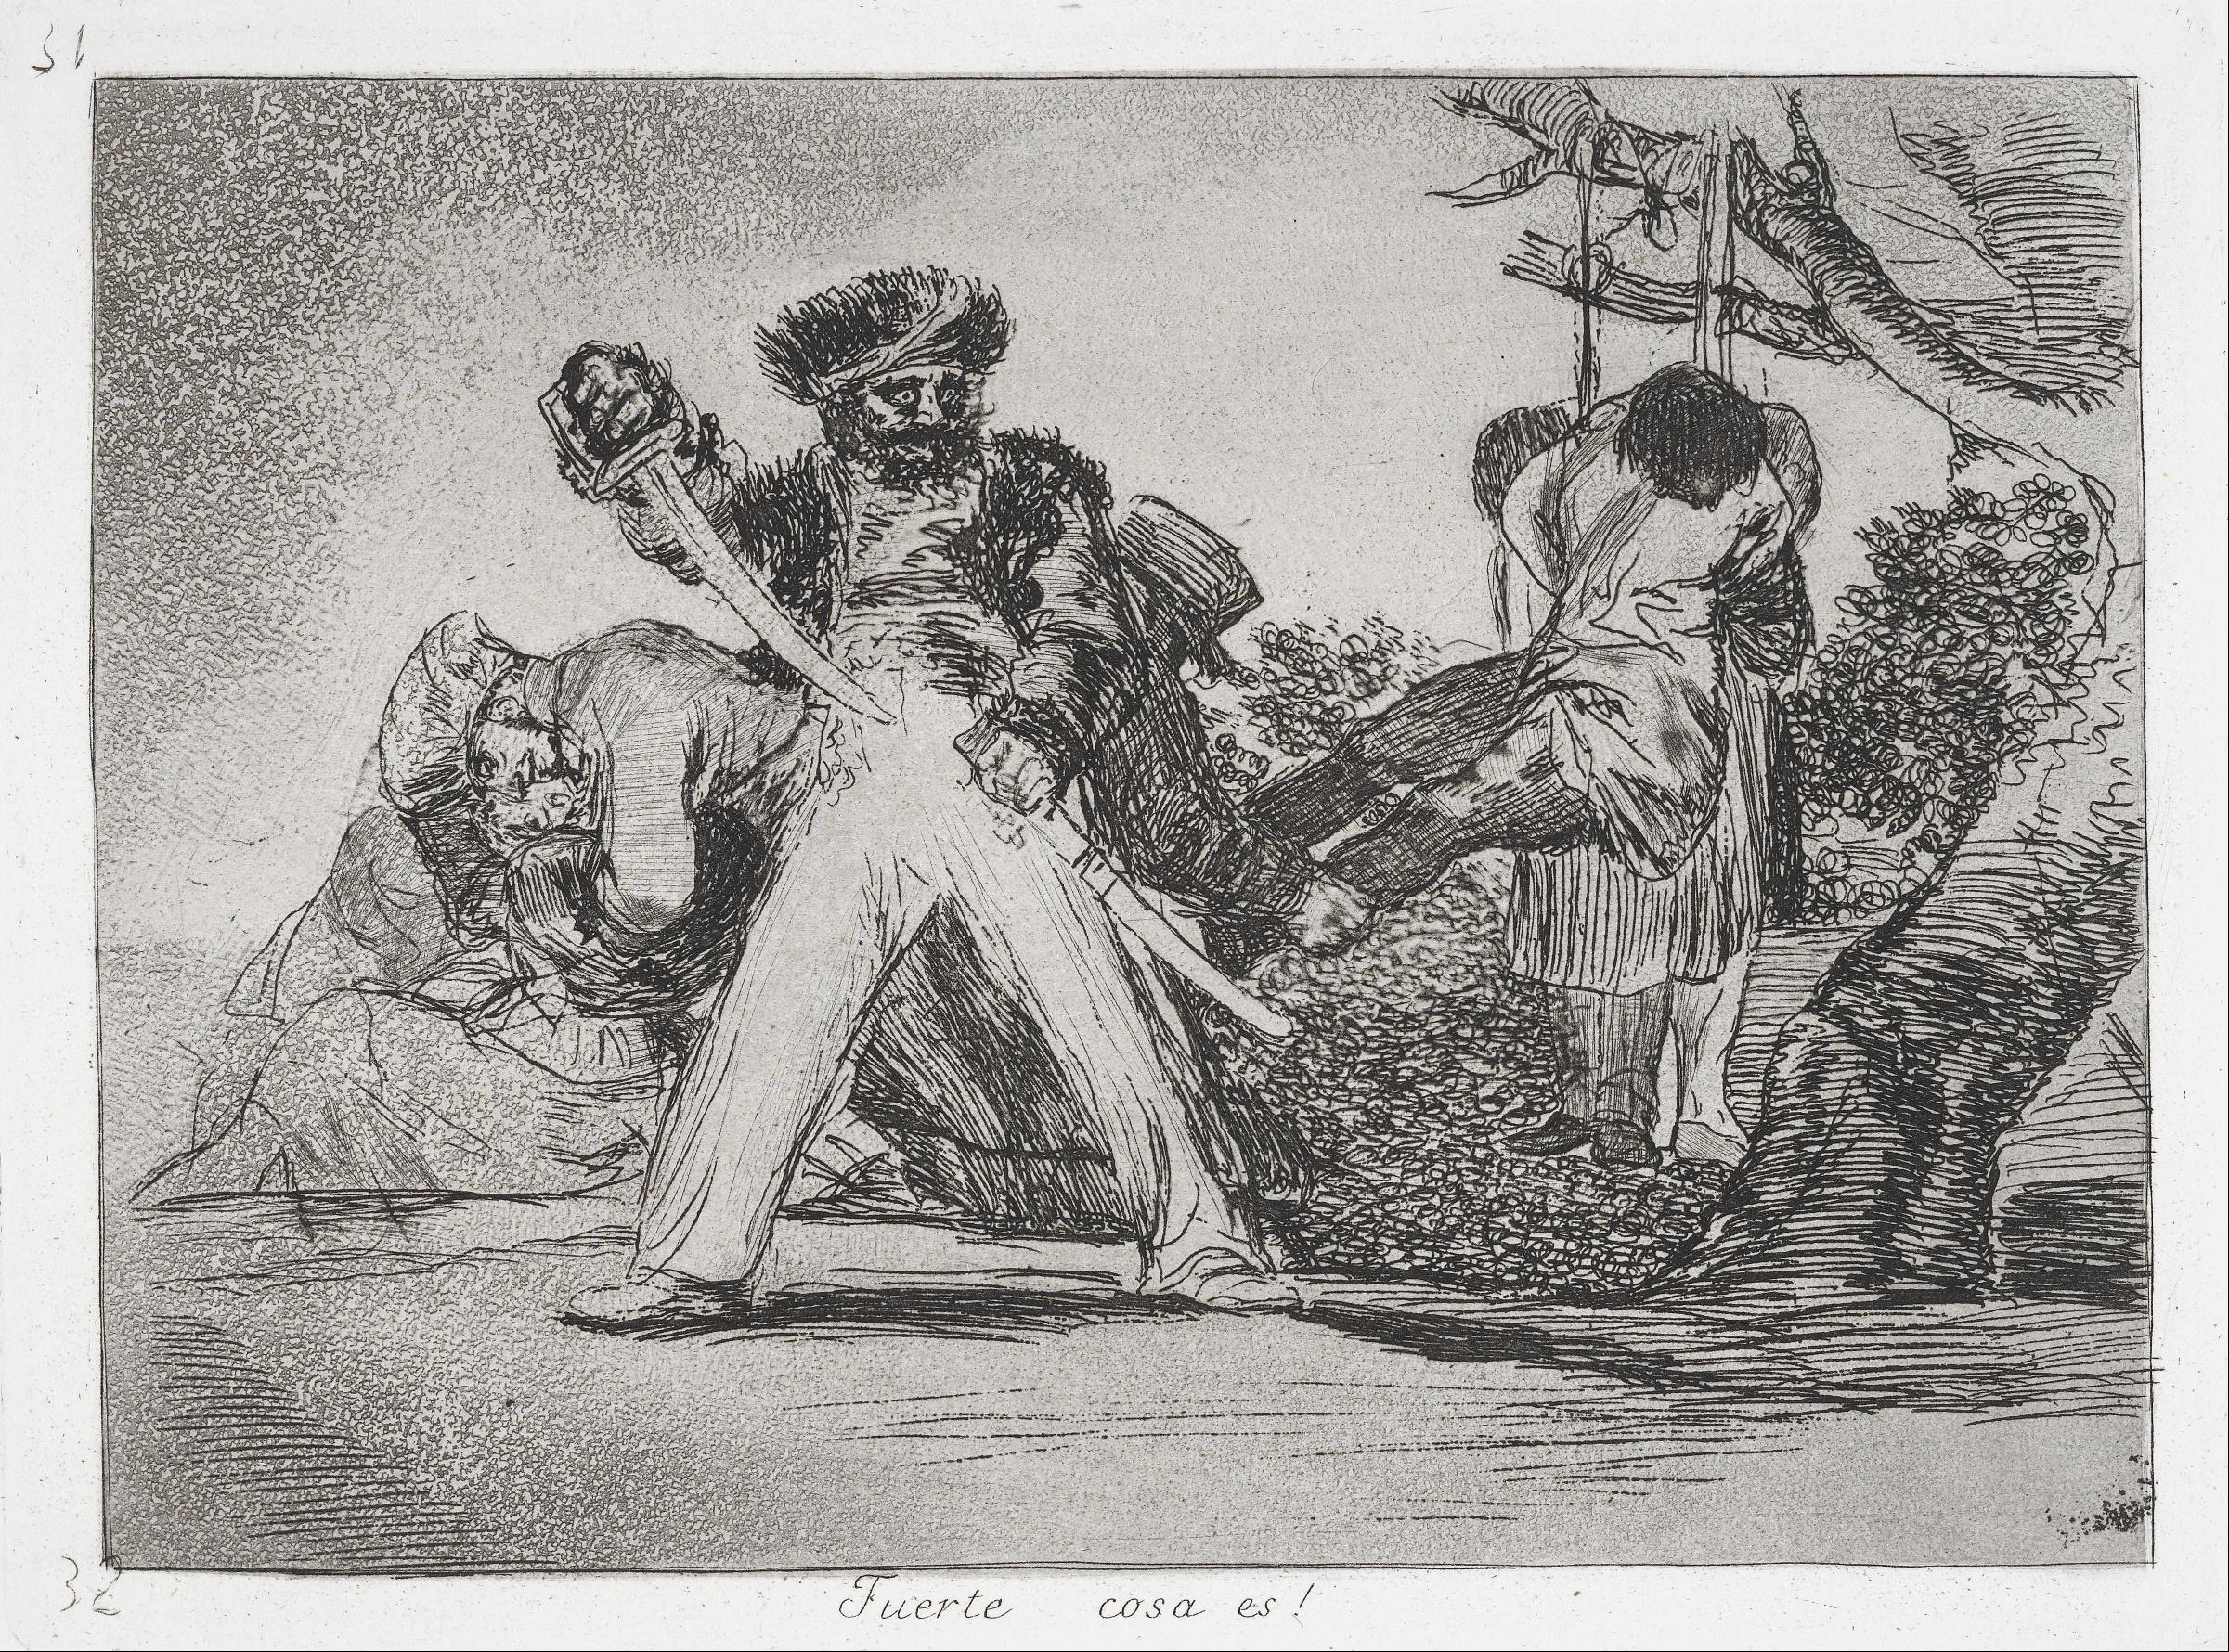 Goya's Disasters of War: The truth about war laid bare